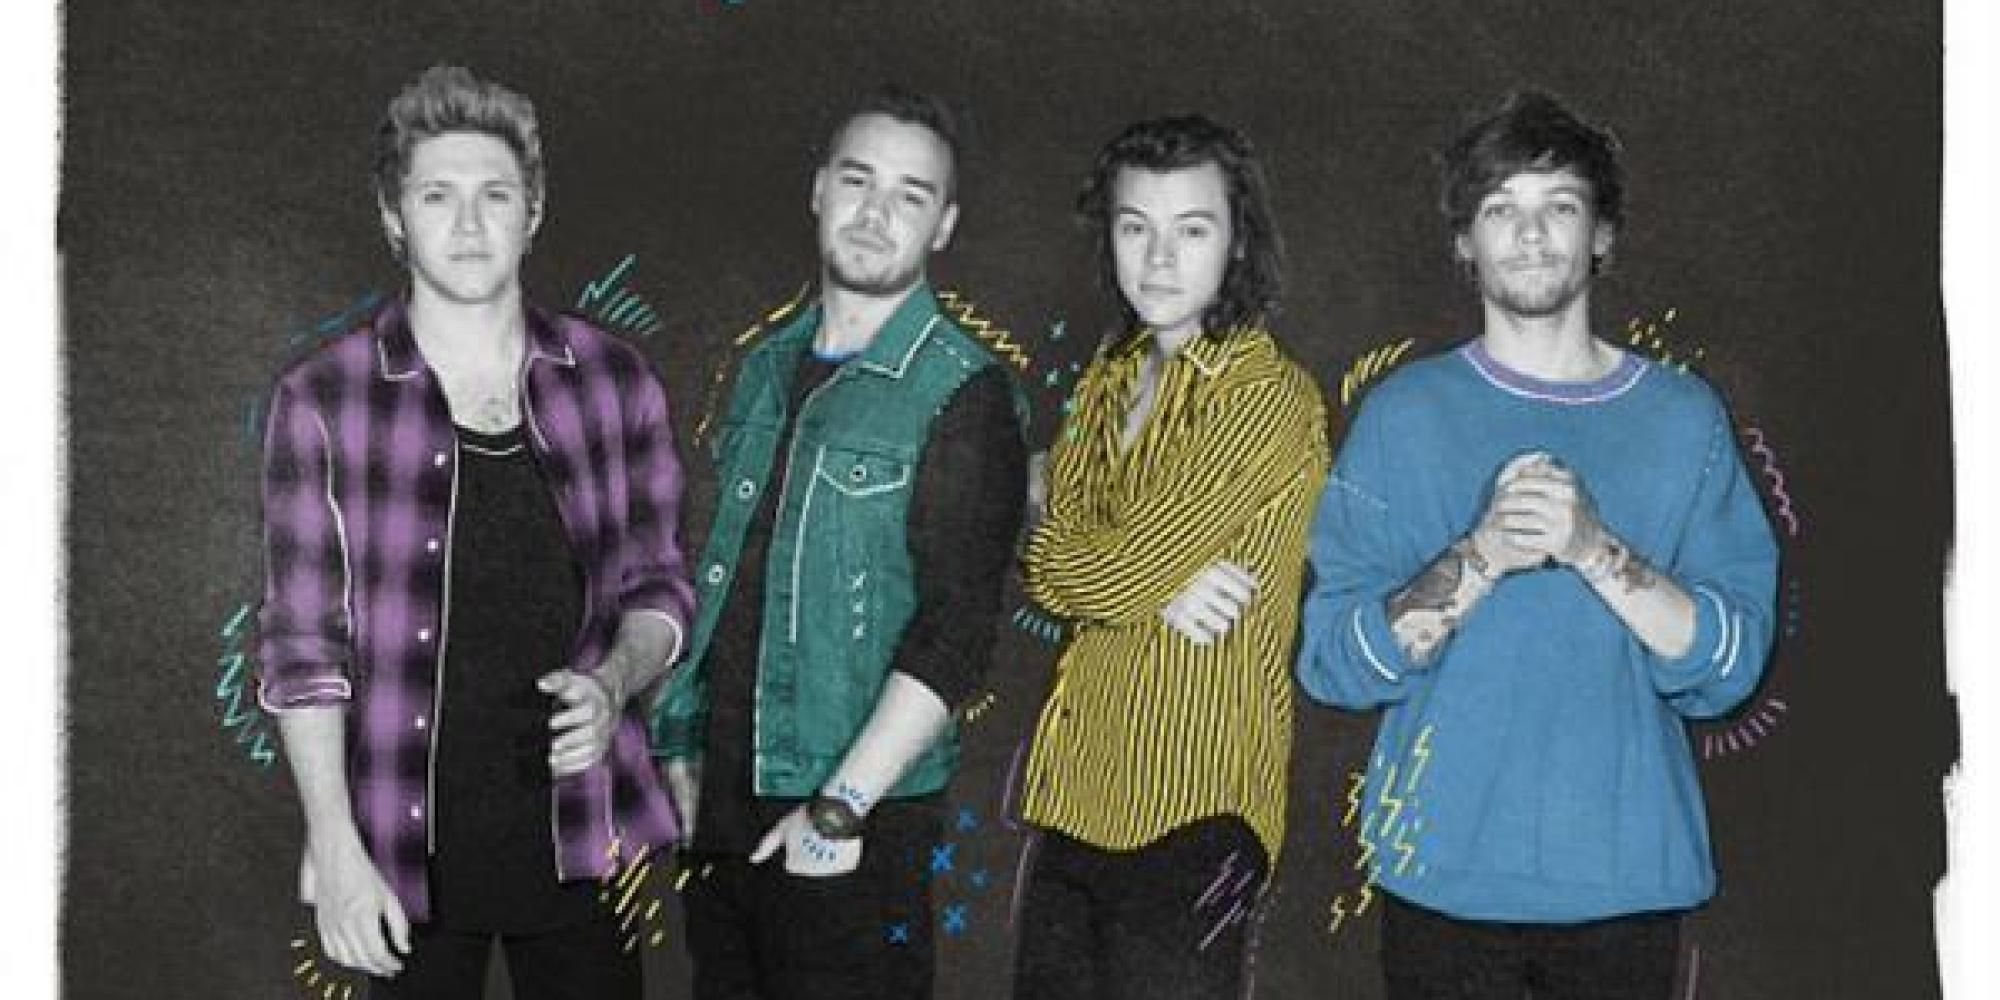 One Direction Wallpapers Without Zayn Wallpapersafari One Direction Posters One Direction Concert One Direction Tour